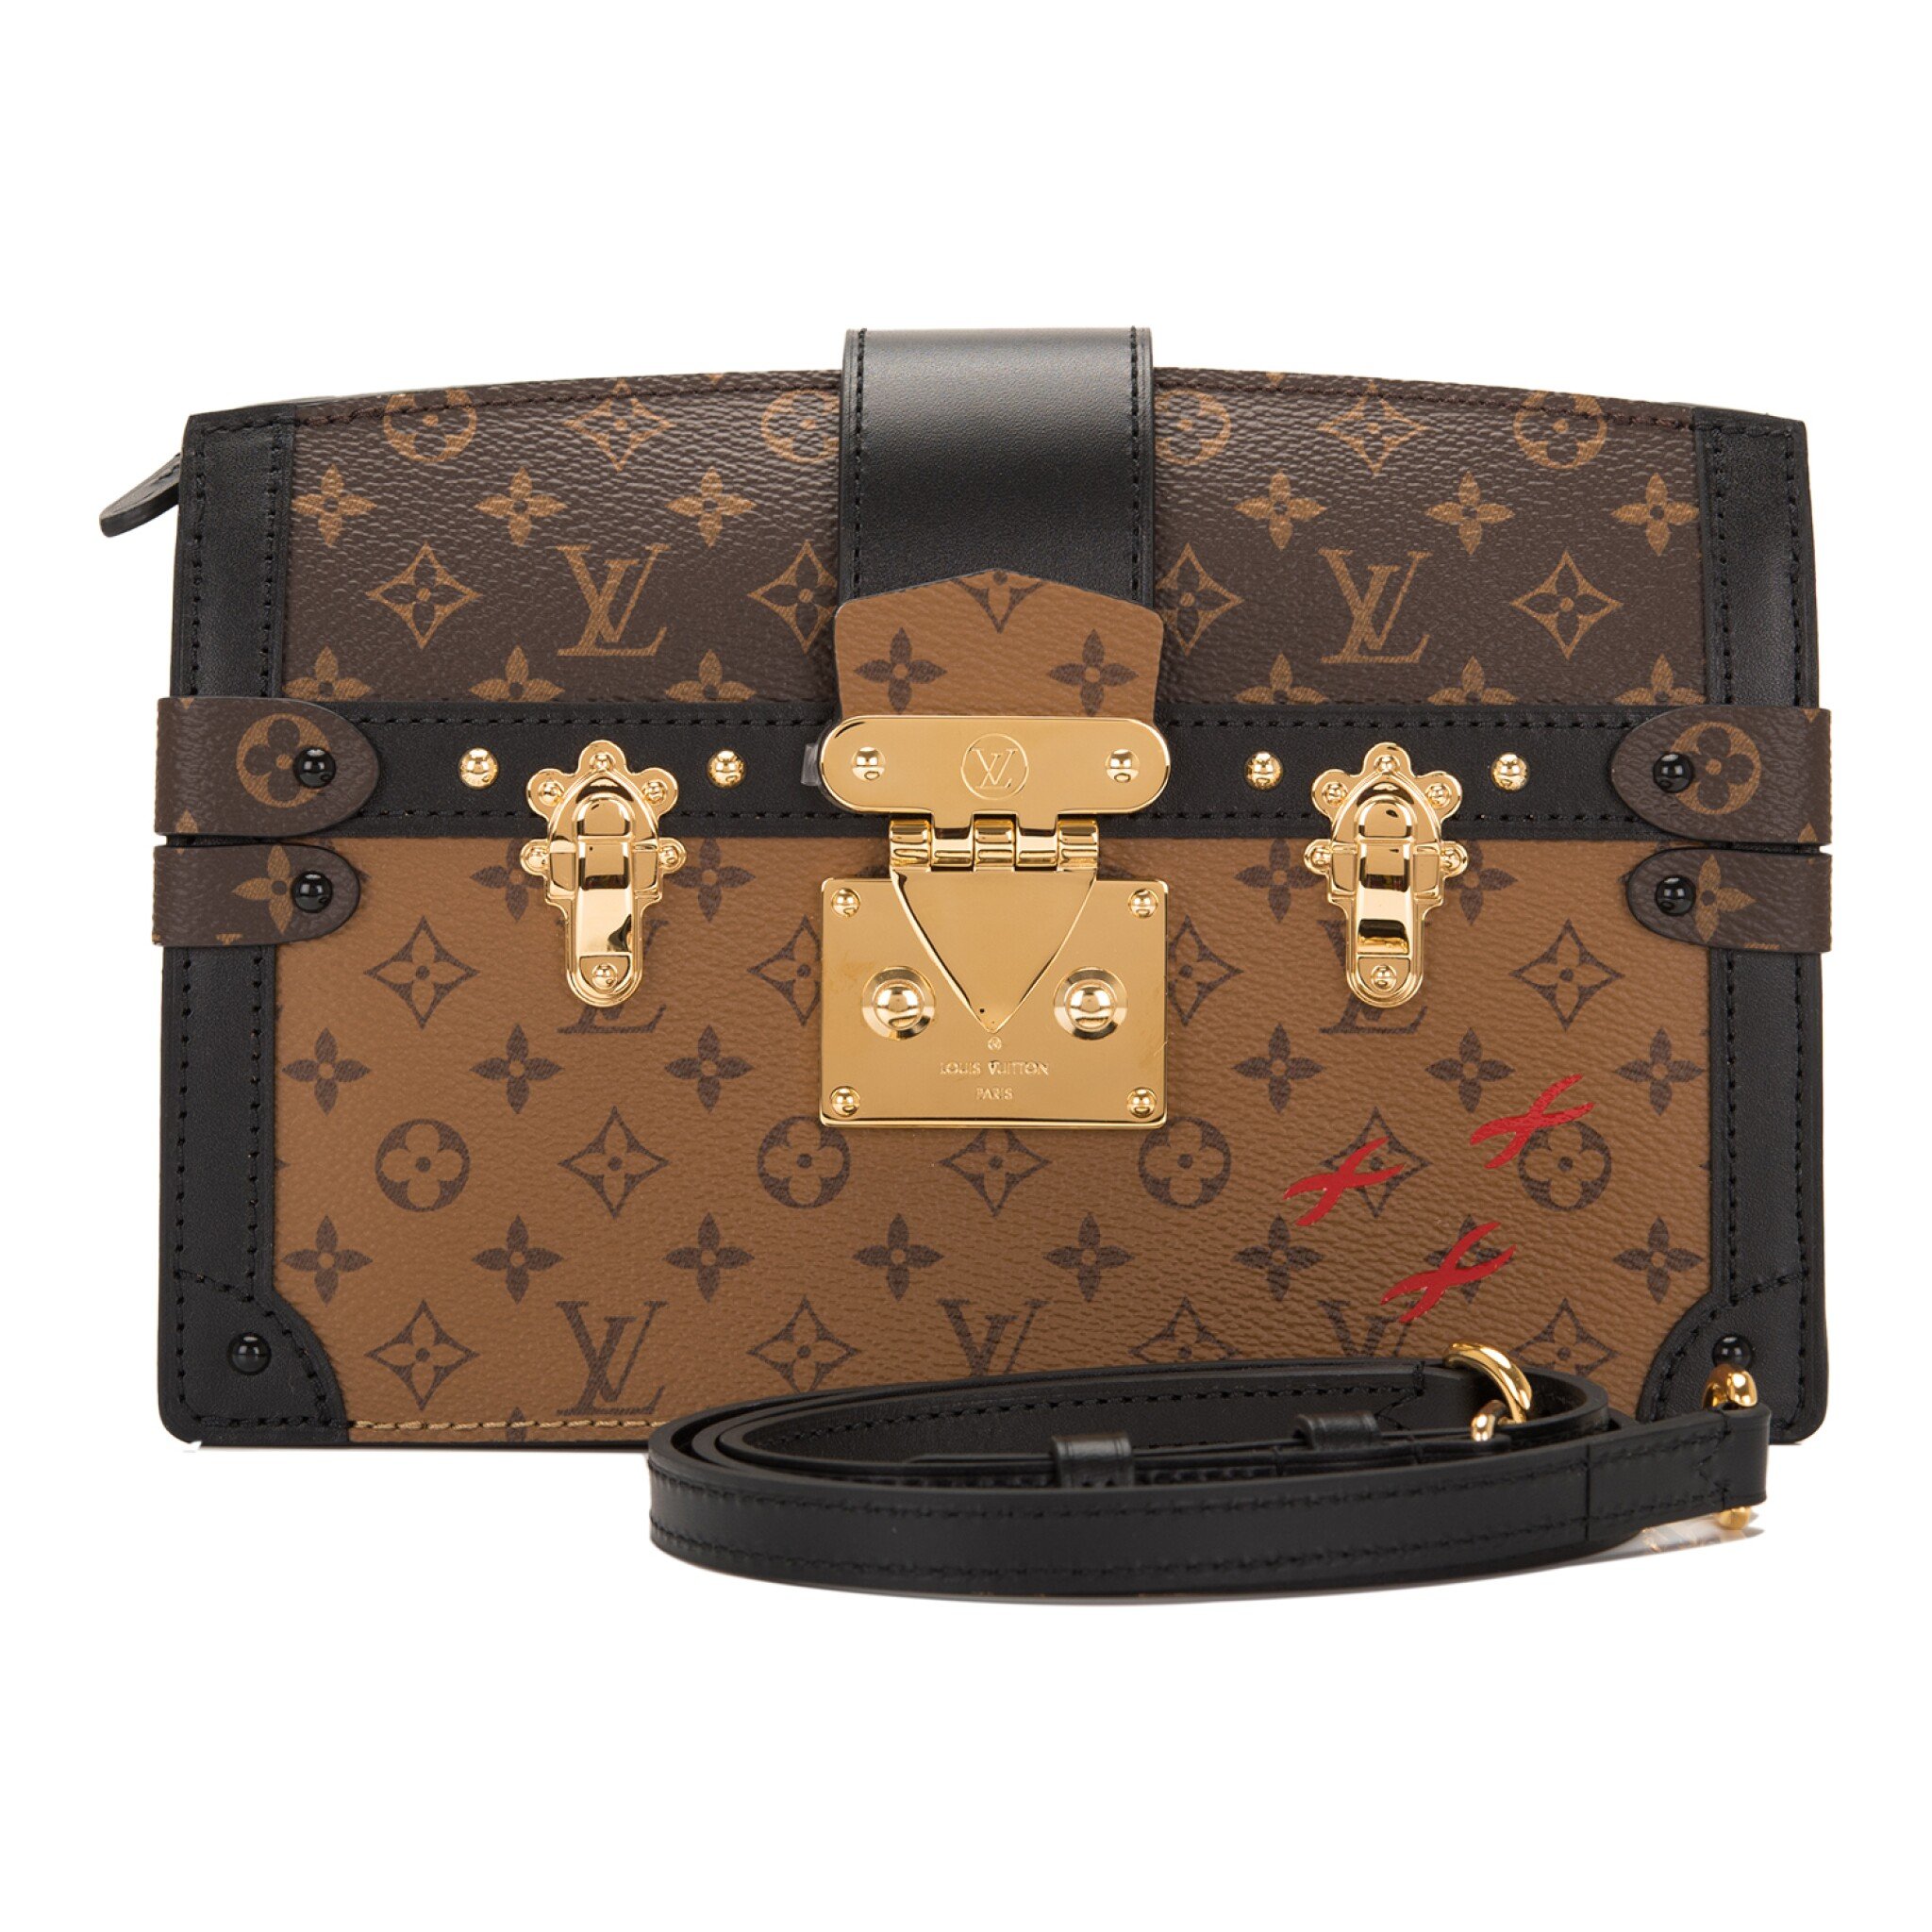 View full screen - View 1 of Lot 115. Louis Vuitton Trunk Clutch of Reverse Monogram Canvas with Polished Brass Hardware .